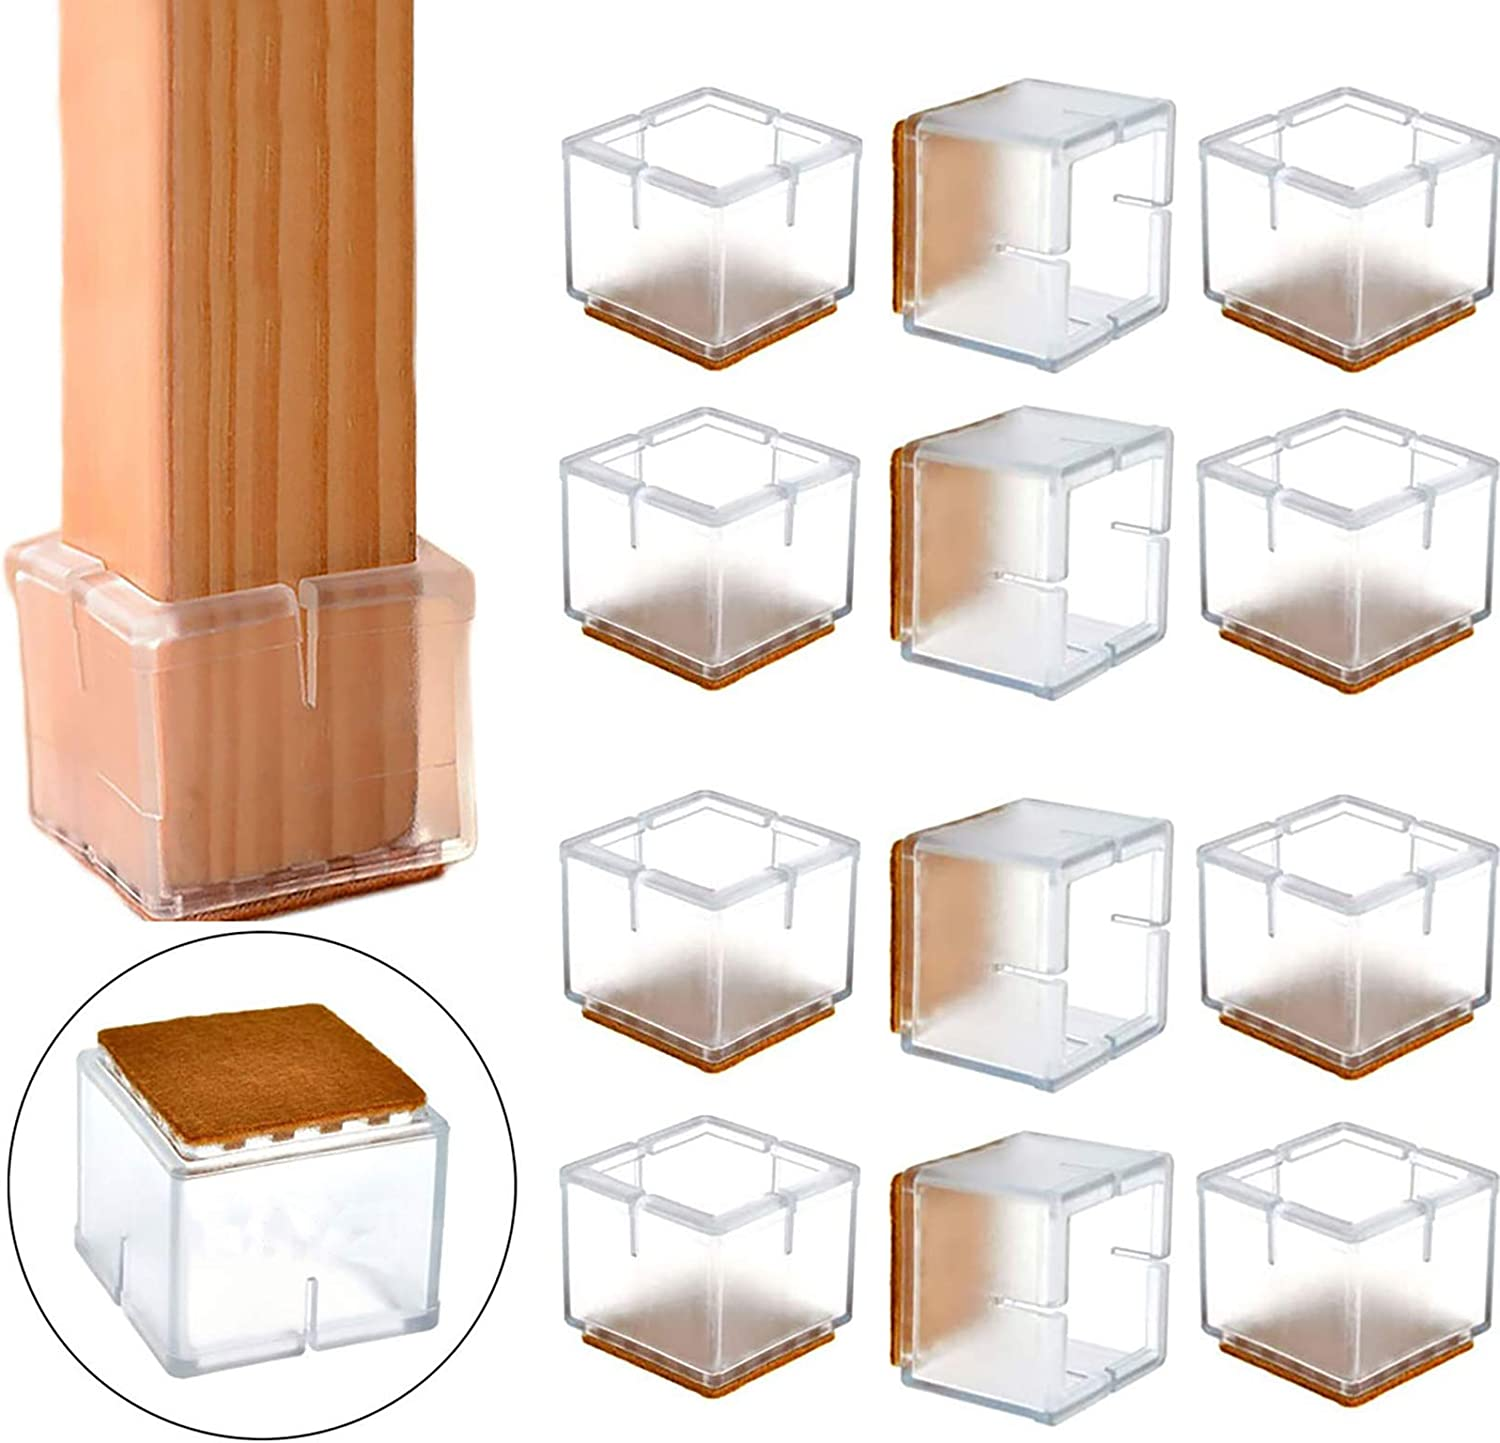 """Furniture Silicon Protection Cover, POCADOM Square Chair Leg Caps 12Pcs Furniture Table Feet Cover Pad Floor Protector 1 1/8"""" to 1 3/8"""" with Felt Pads, Clear"""